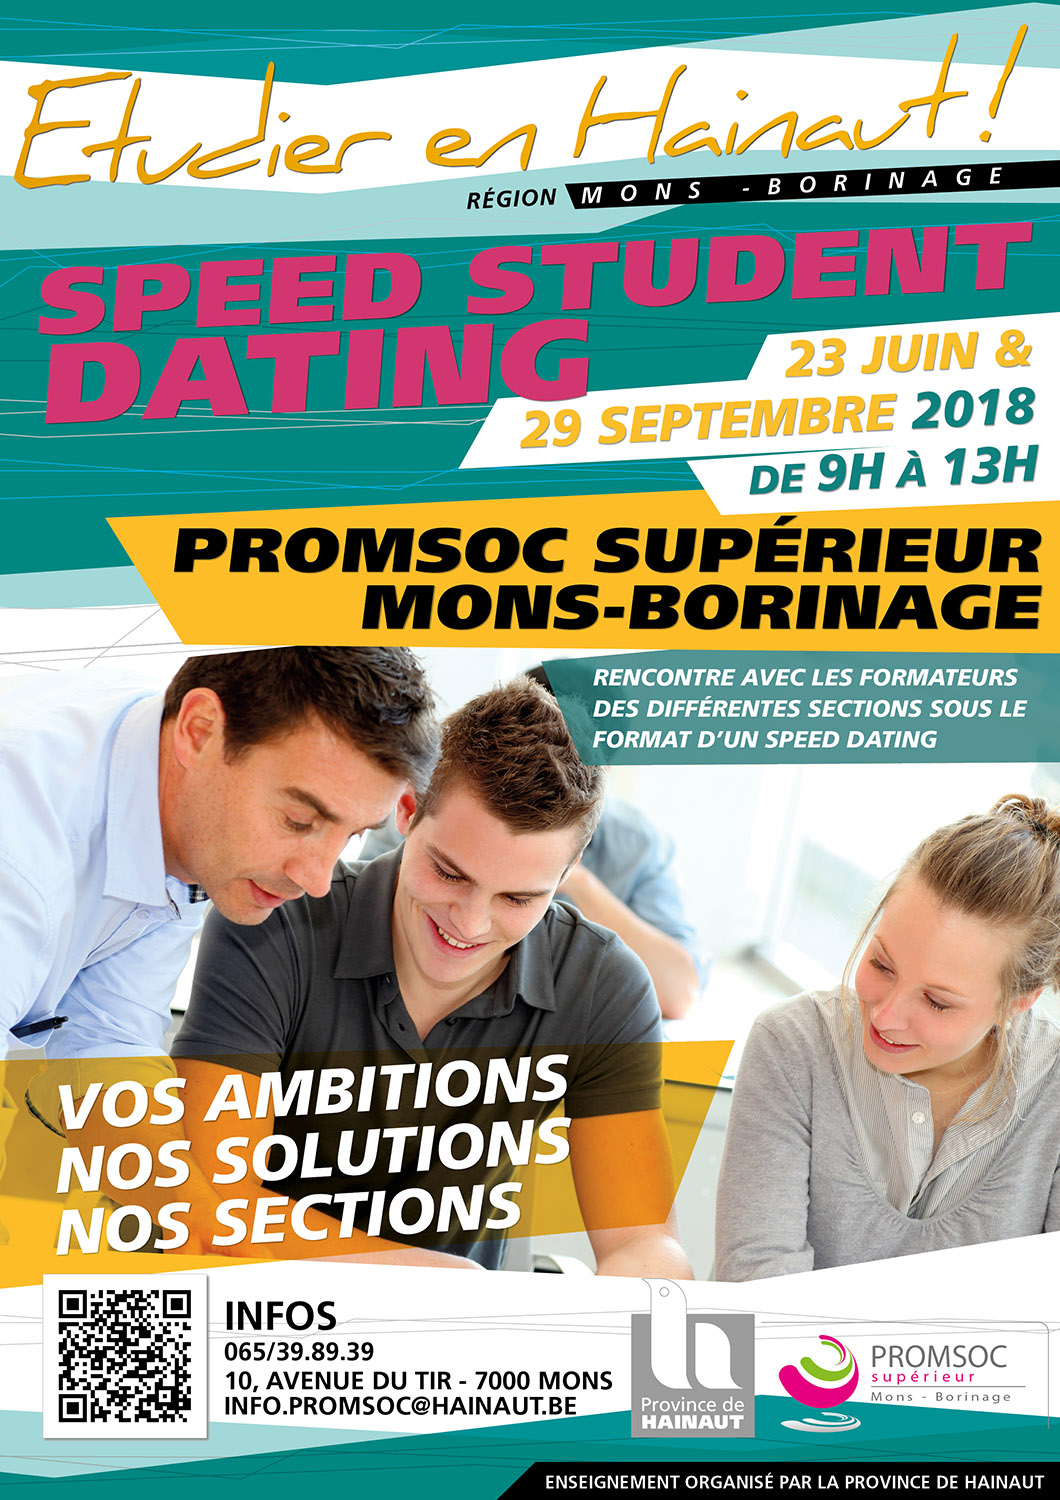 Speed Student Dating à la Prom Soc Supérieur Mons Borinage